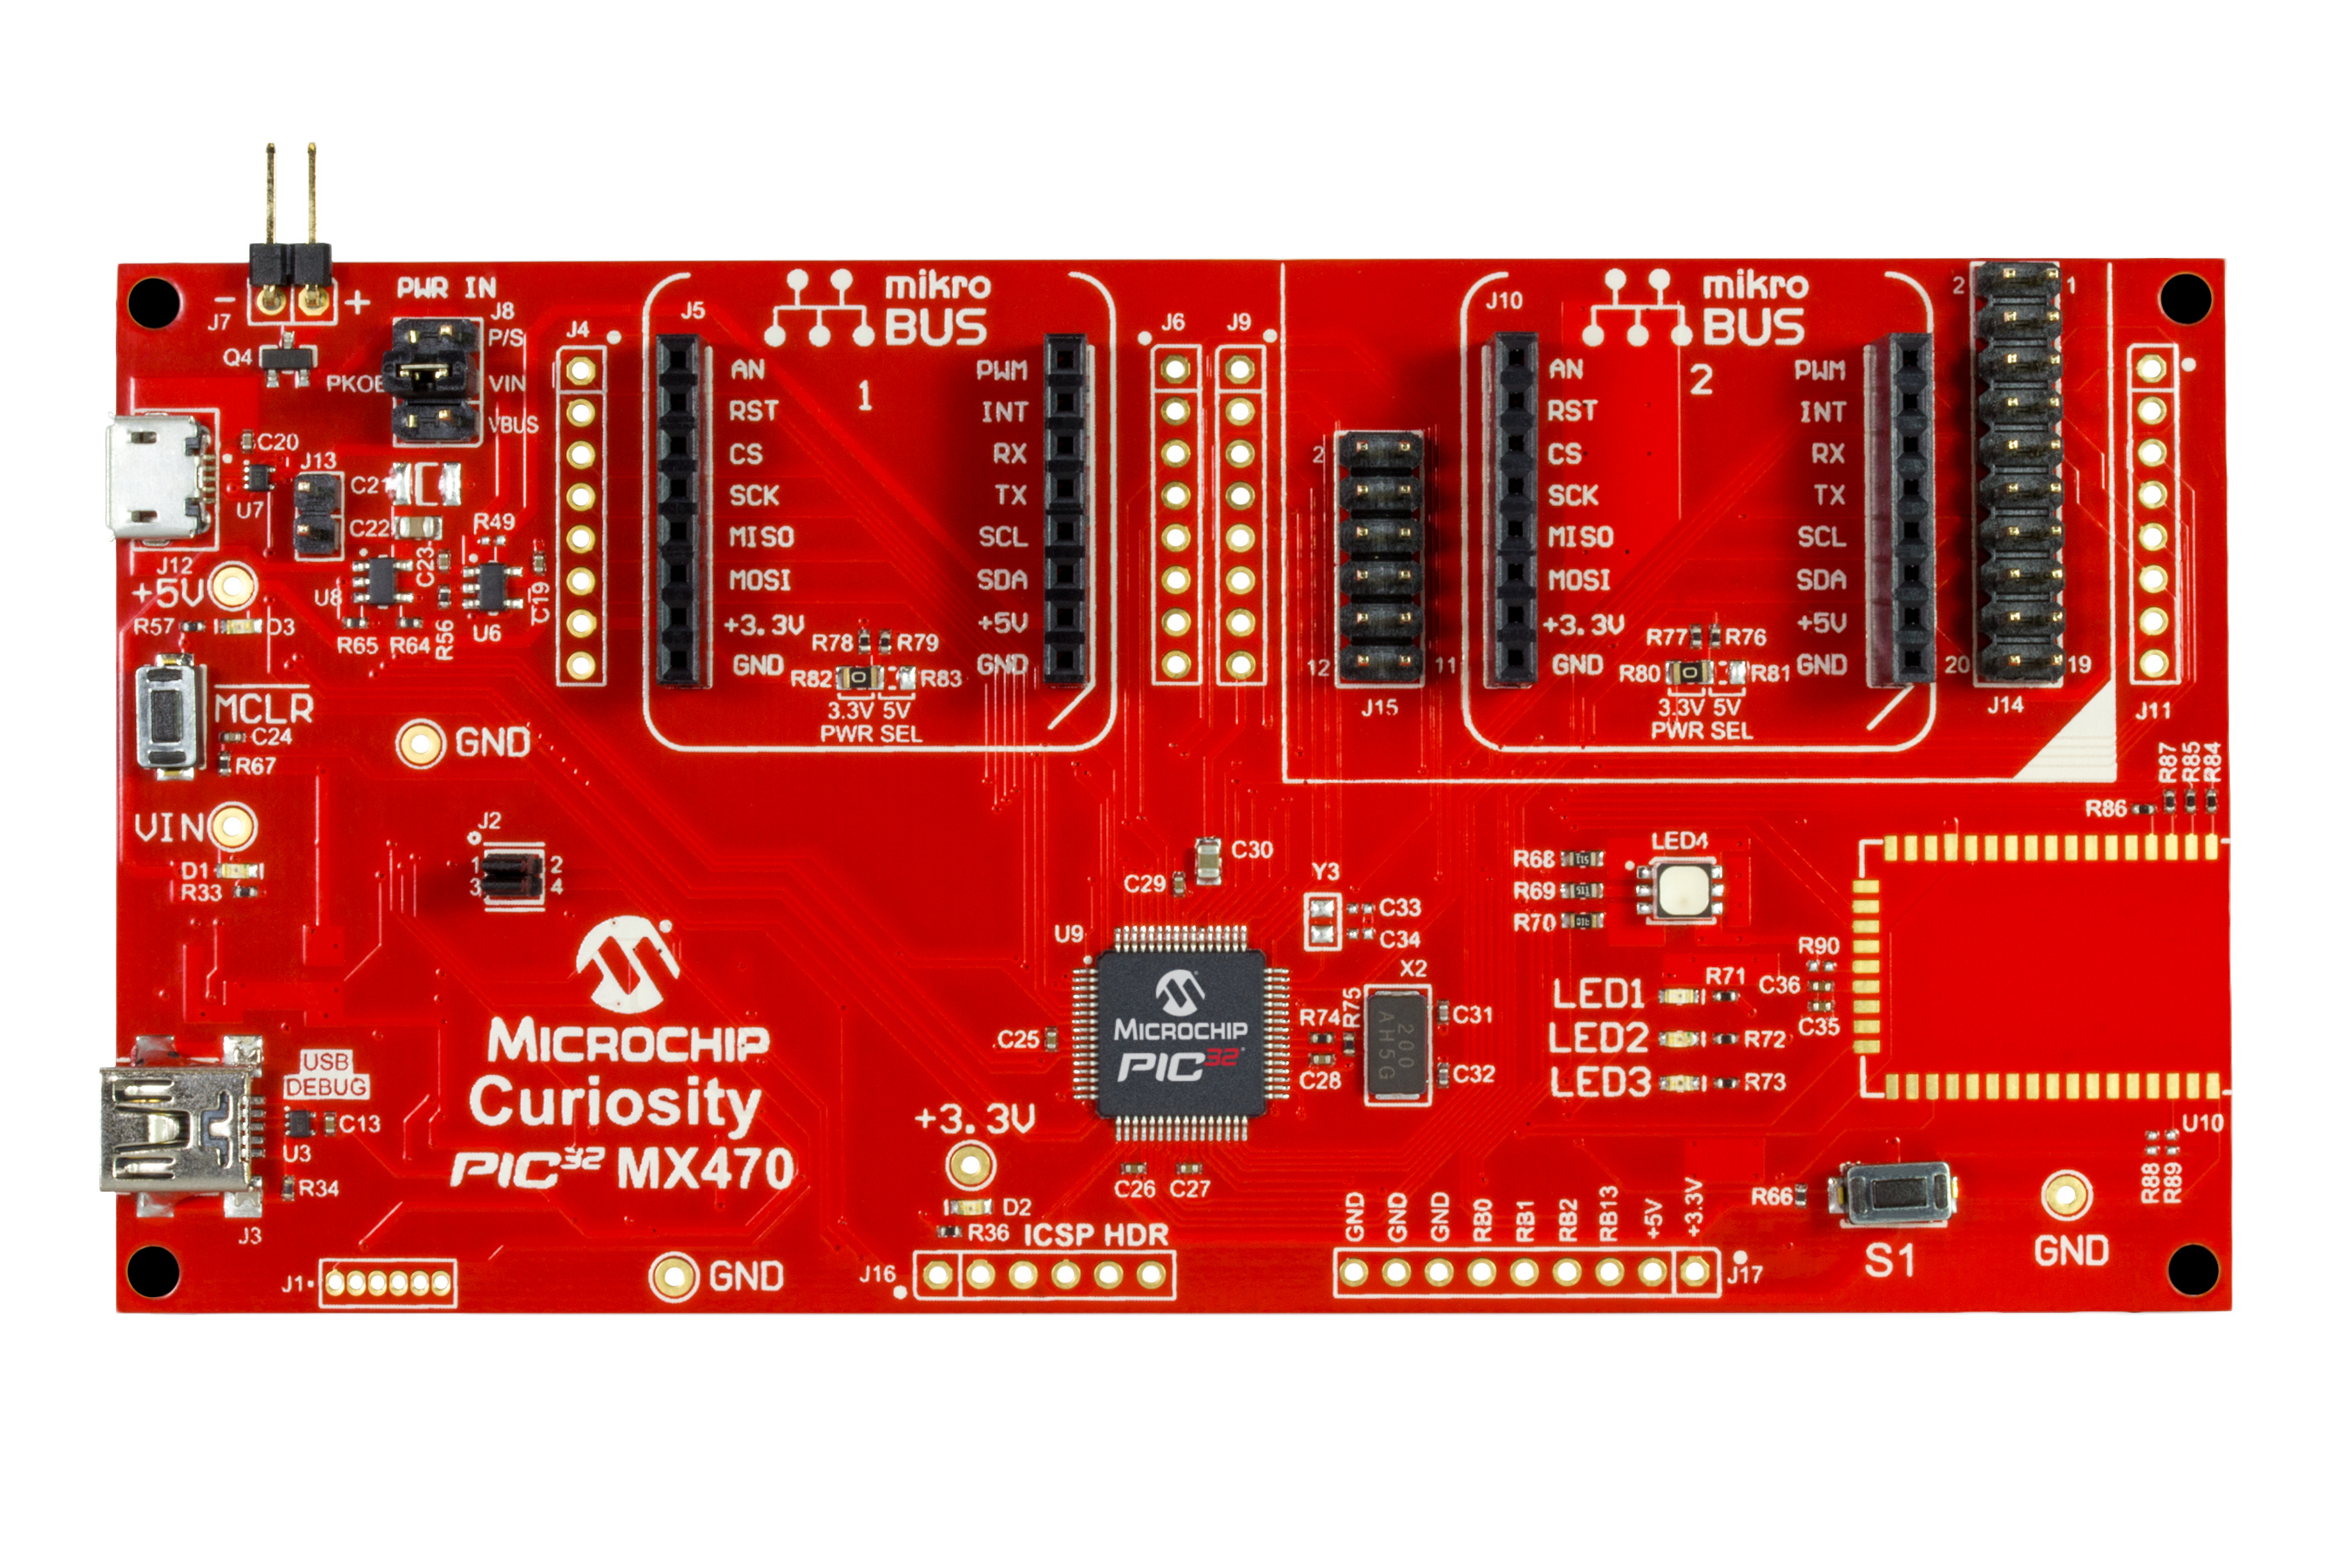 Development Tools So This Is Itnow Use Your Microcontroller Pic16f877a To Give 5v The Curiosity Pic32 Mx470 Board Features Pic32mx Series Pic32mx470512h With A 120mhz Cpu 512kb Flash 128kb Ram Full Speed Usb And Multiple